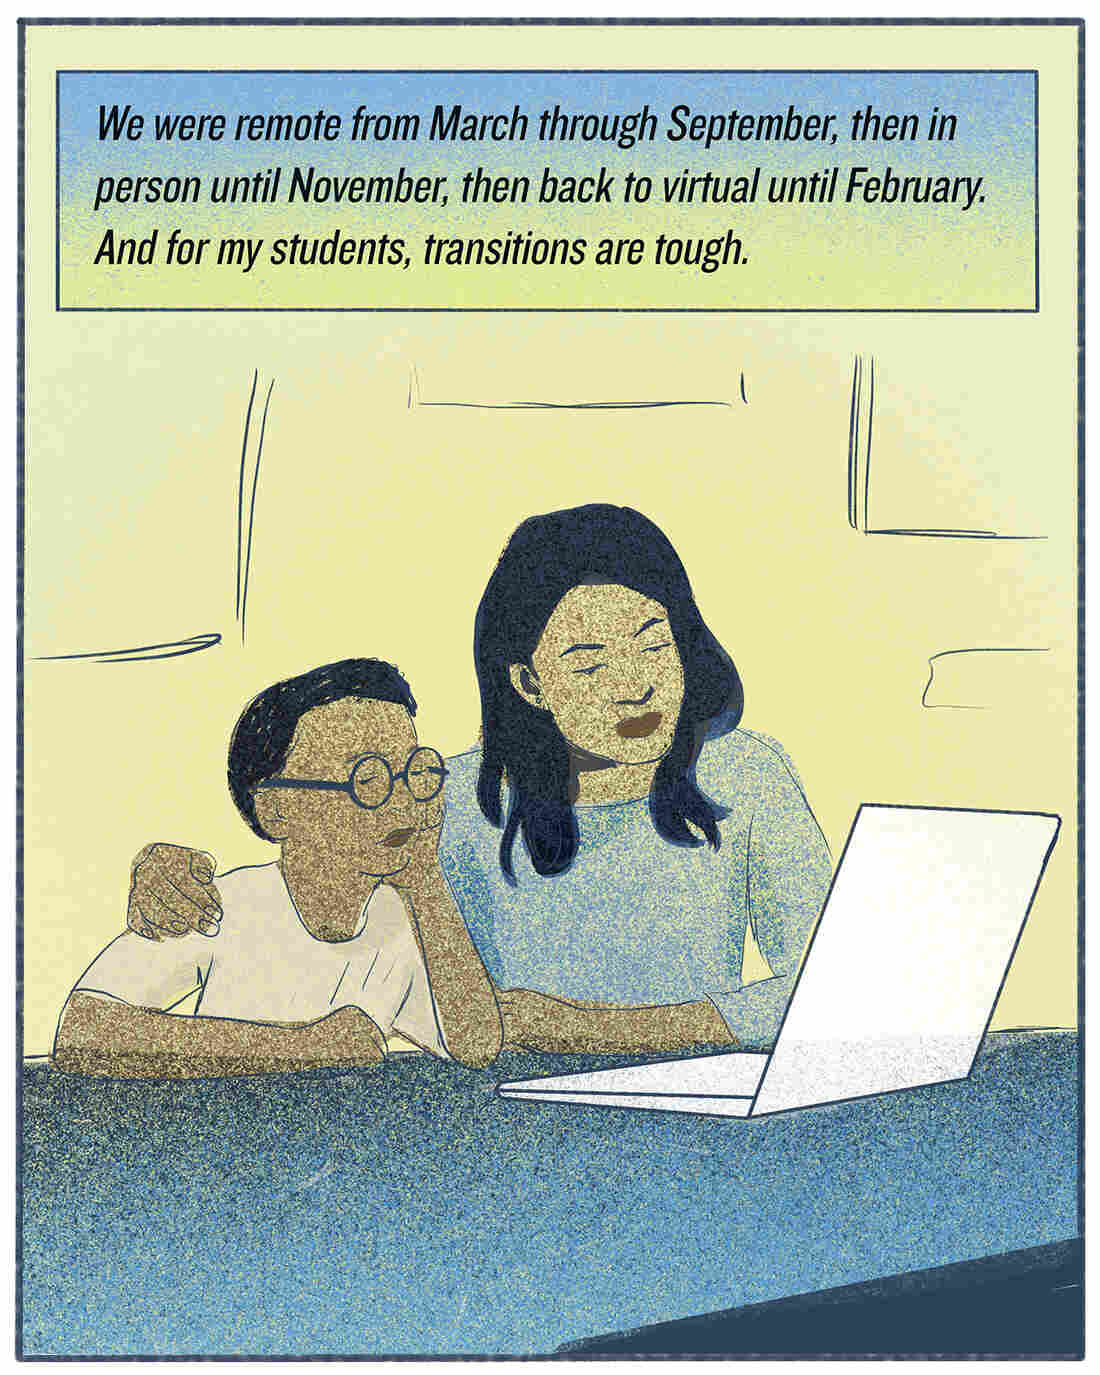 """""""We were remote from March through September, then in person until November, then back to virtual until February. And for my students, transitions are tough."""""""